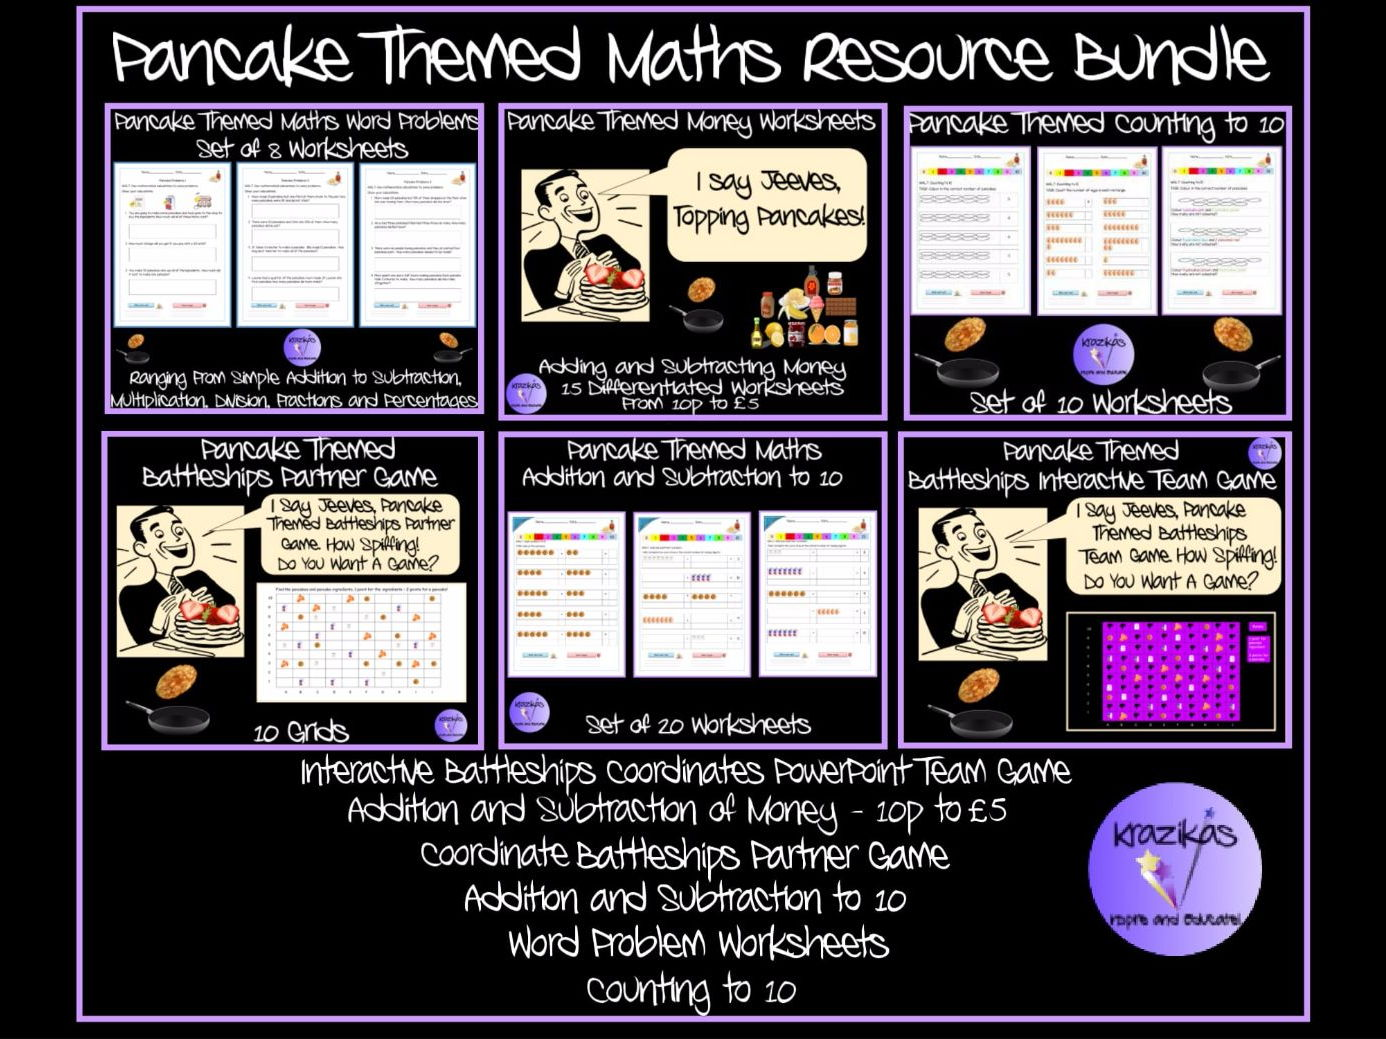 Pancake Themed Maths Resource Bundle - Coordinates, Money, Word problems, Counting to 10, Addition and Subtraction to 10